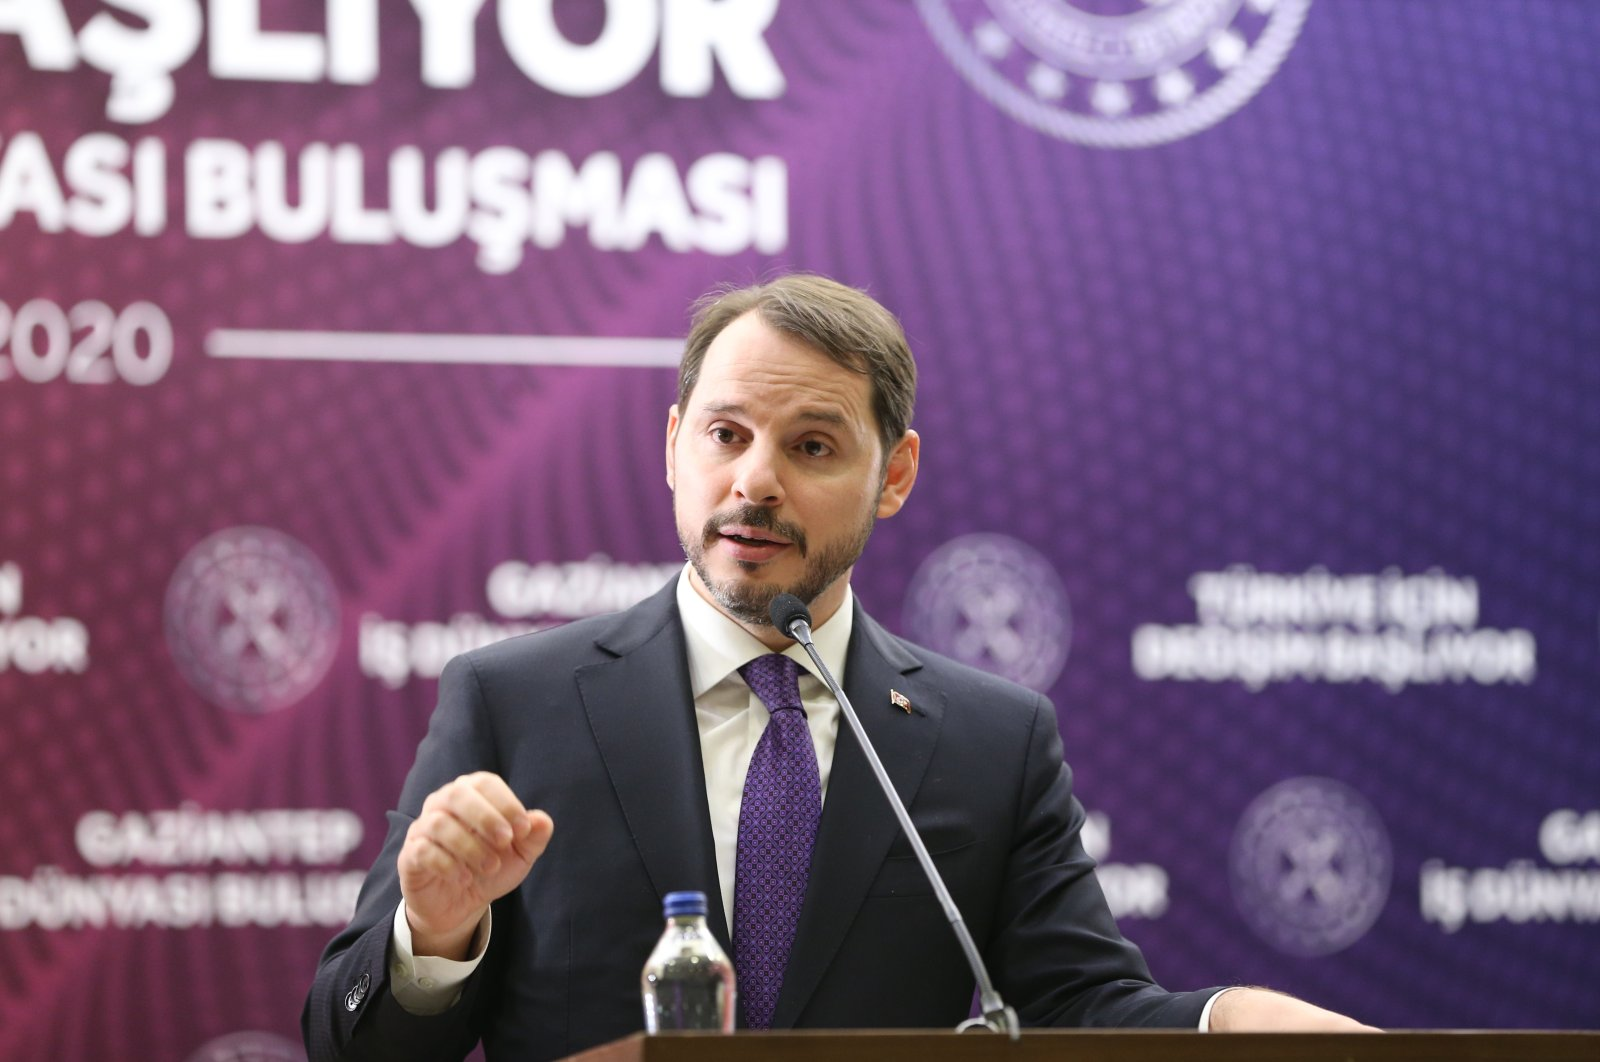 Treasury and Finance Minister Berat Albayrak speaks during a meeting with businesspeople in Turkey's southeastern Gaziantep province, Feb. 20, 2020. (AA Photo)